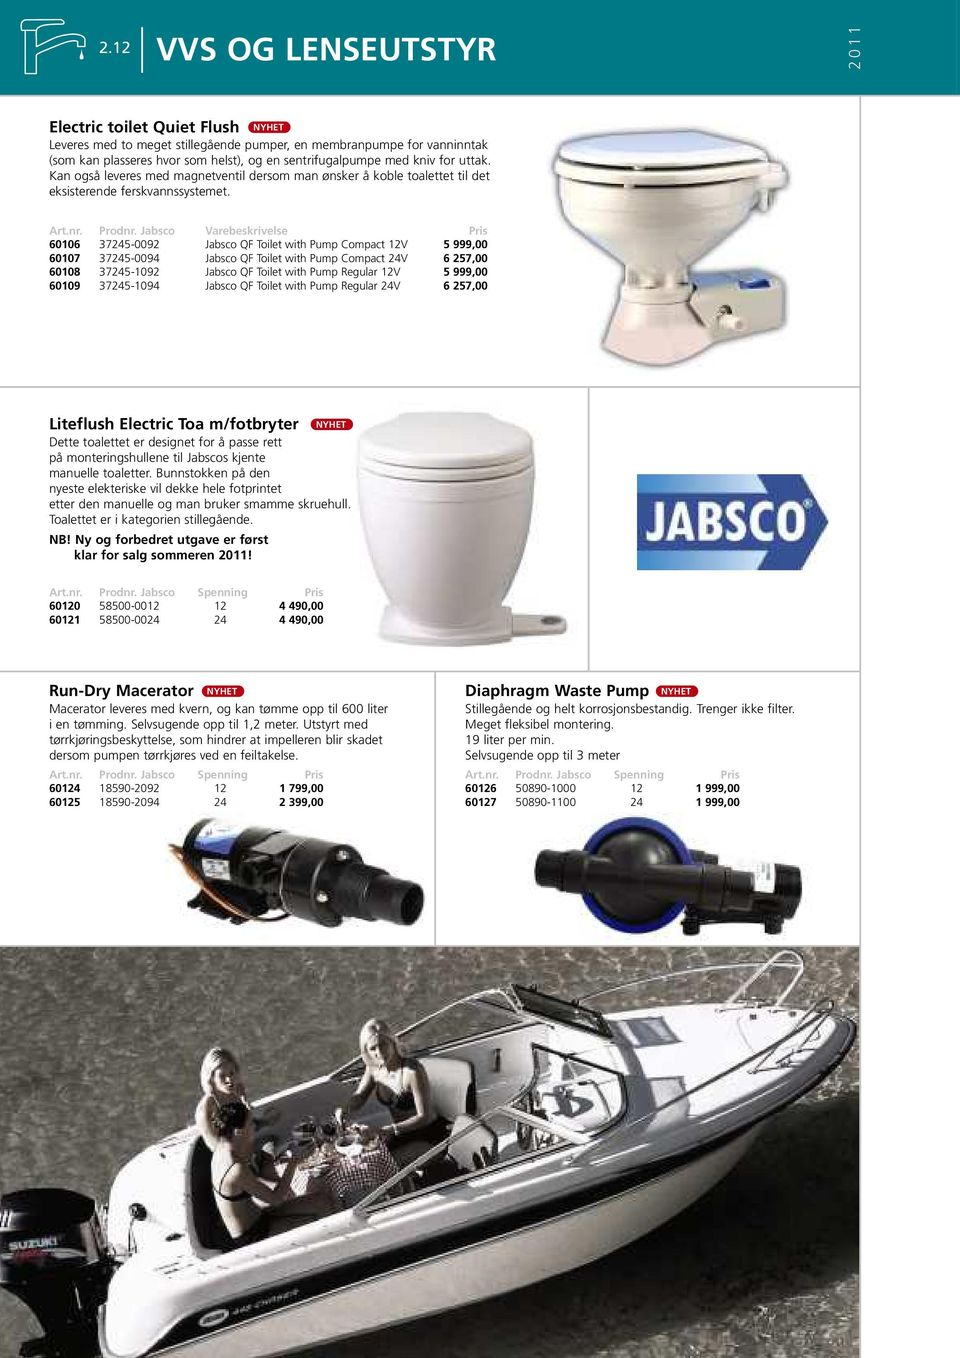 Jabsco Varebeskrivelse 60106 37245-0092 Jabsco QF Toilet with Pump Compact 12V 5 999,00 60107 37245-0094 Jabsco QF Toilet with Pump Compact 24V 6 257,00 60108 37245-1092 Jabsco QF Toilet with Pump